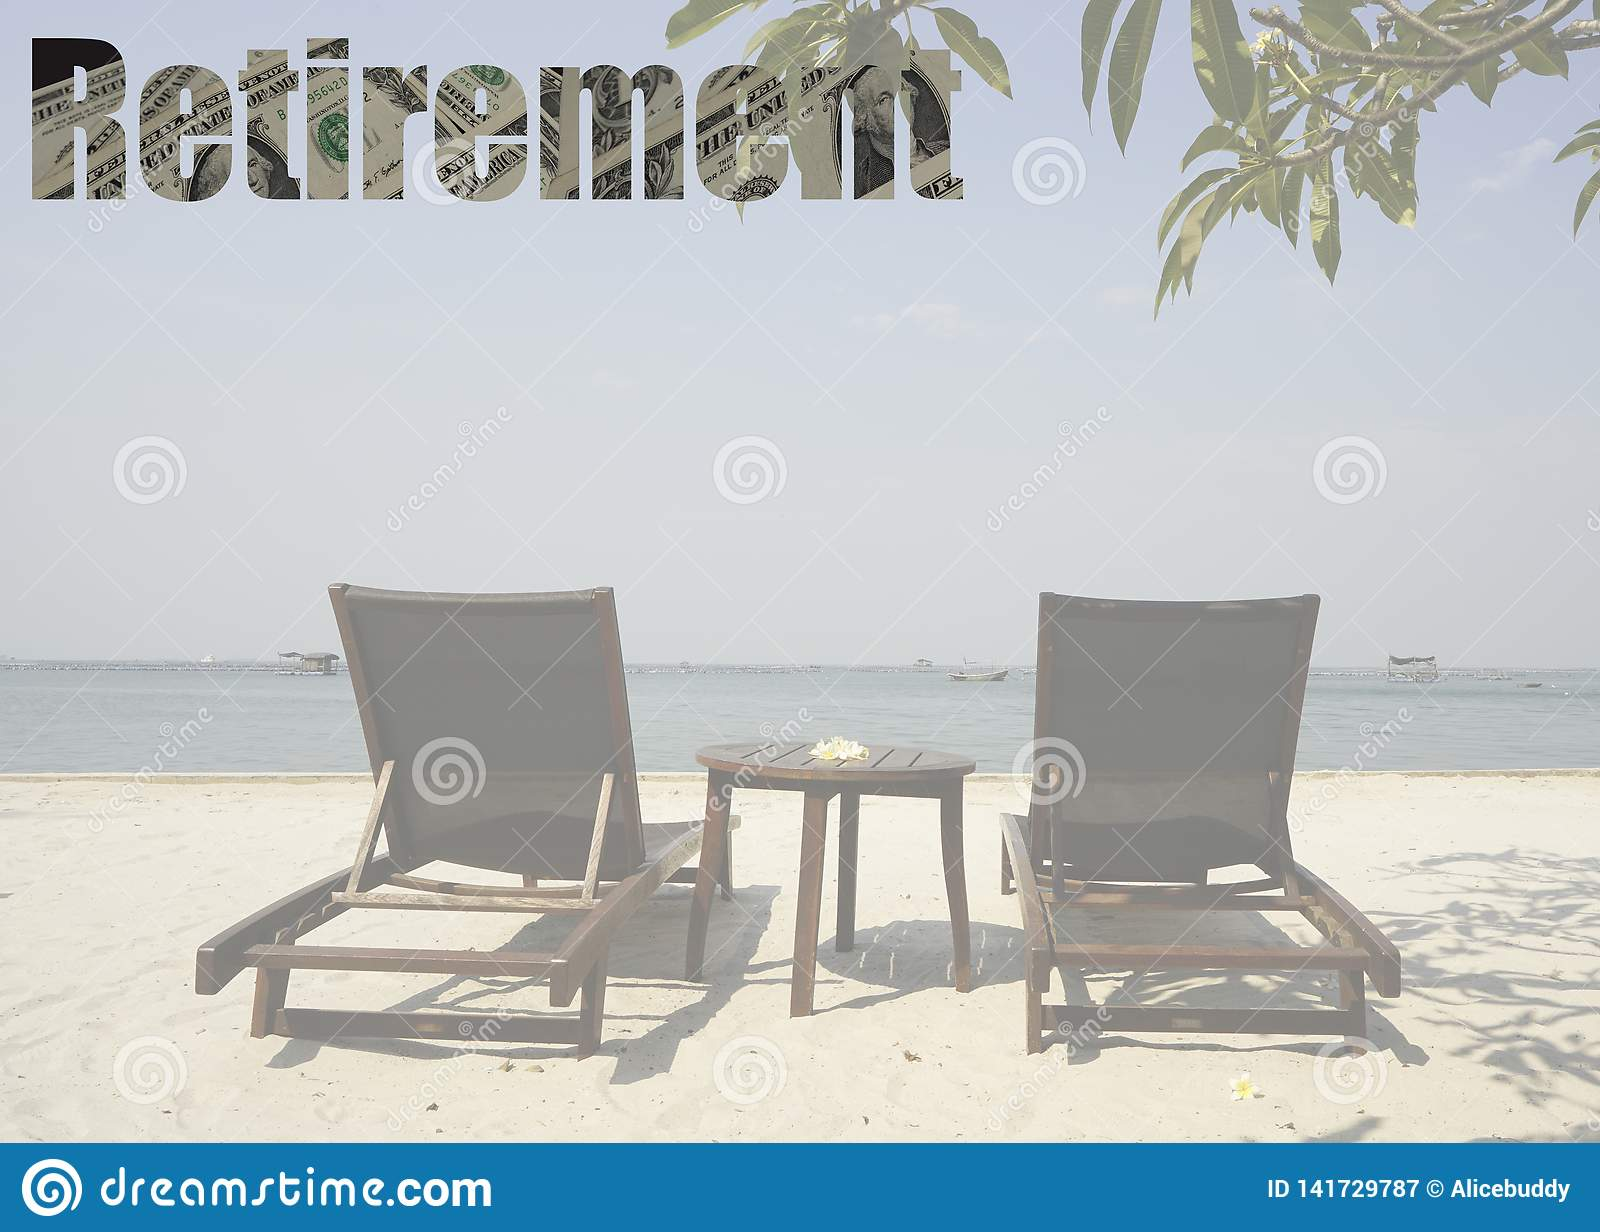 Planing for rich and happy when retirement time coming